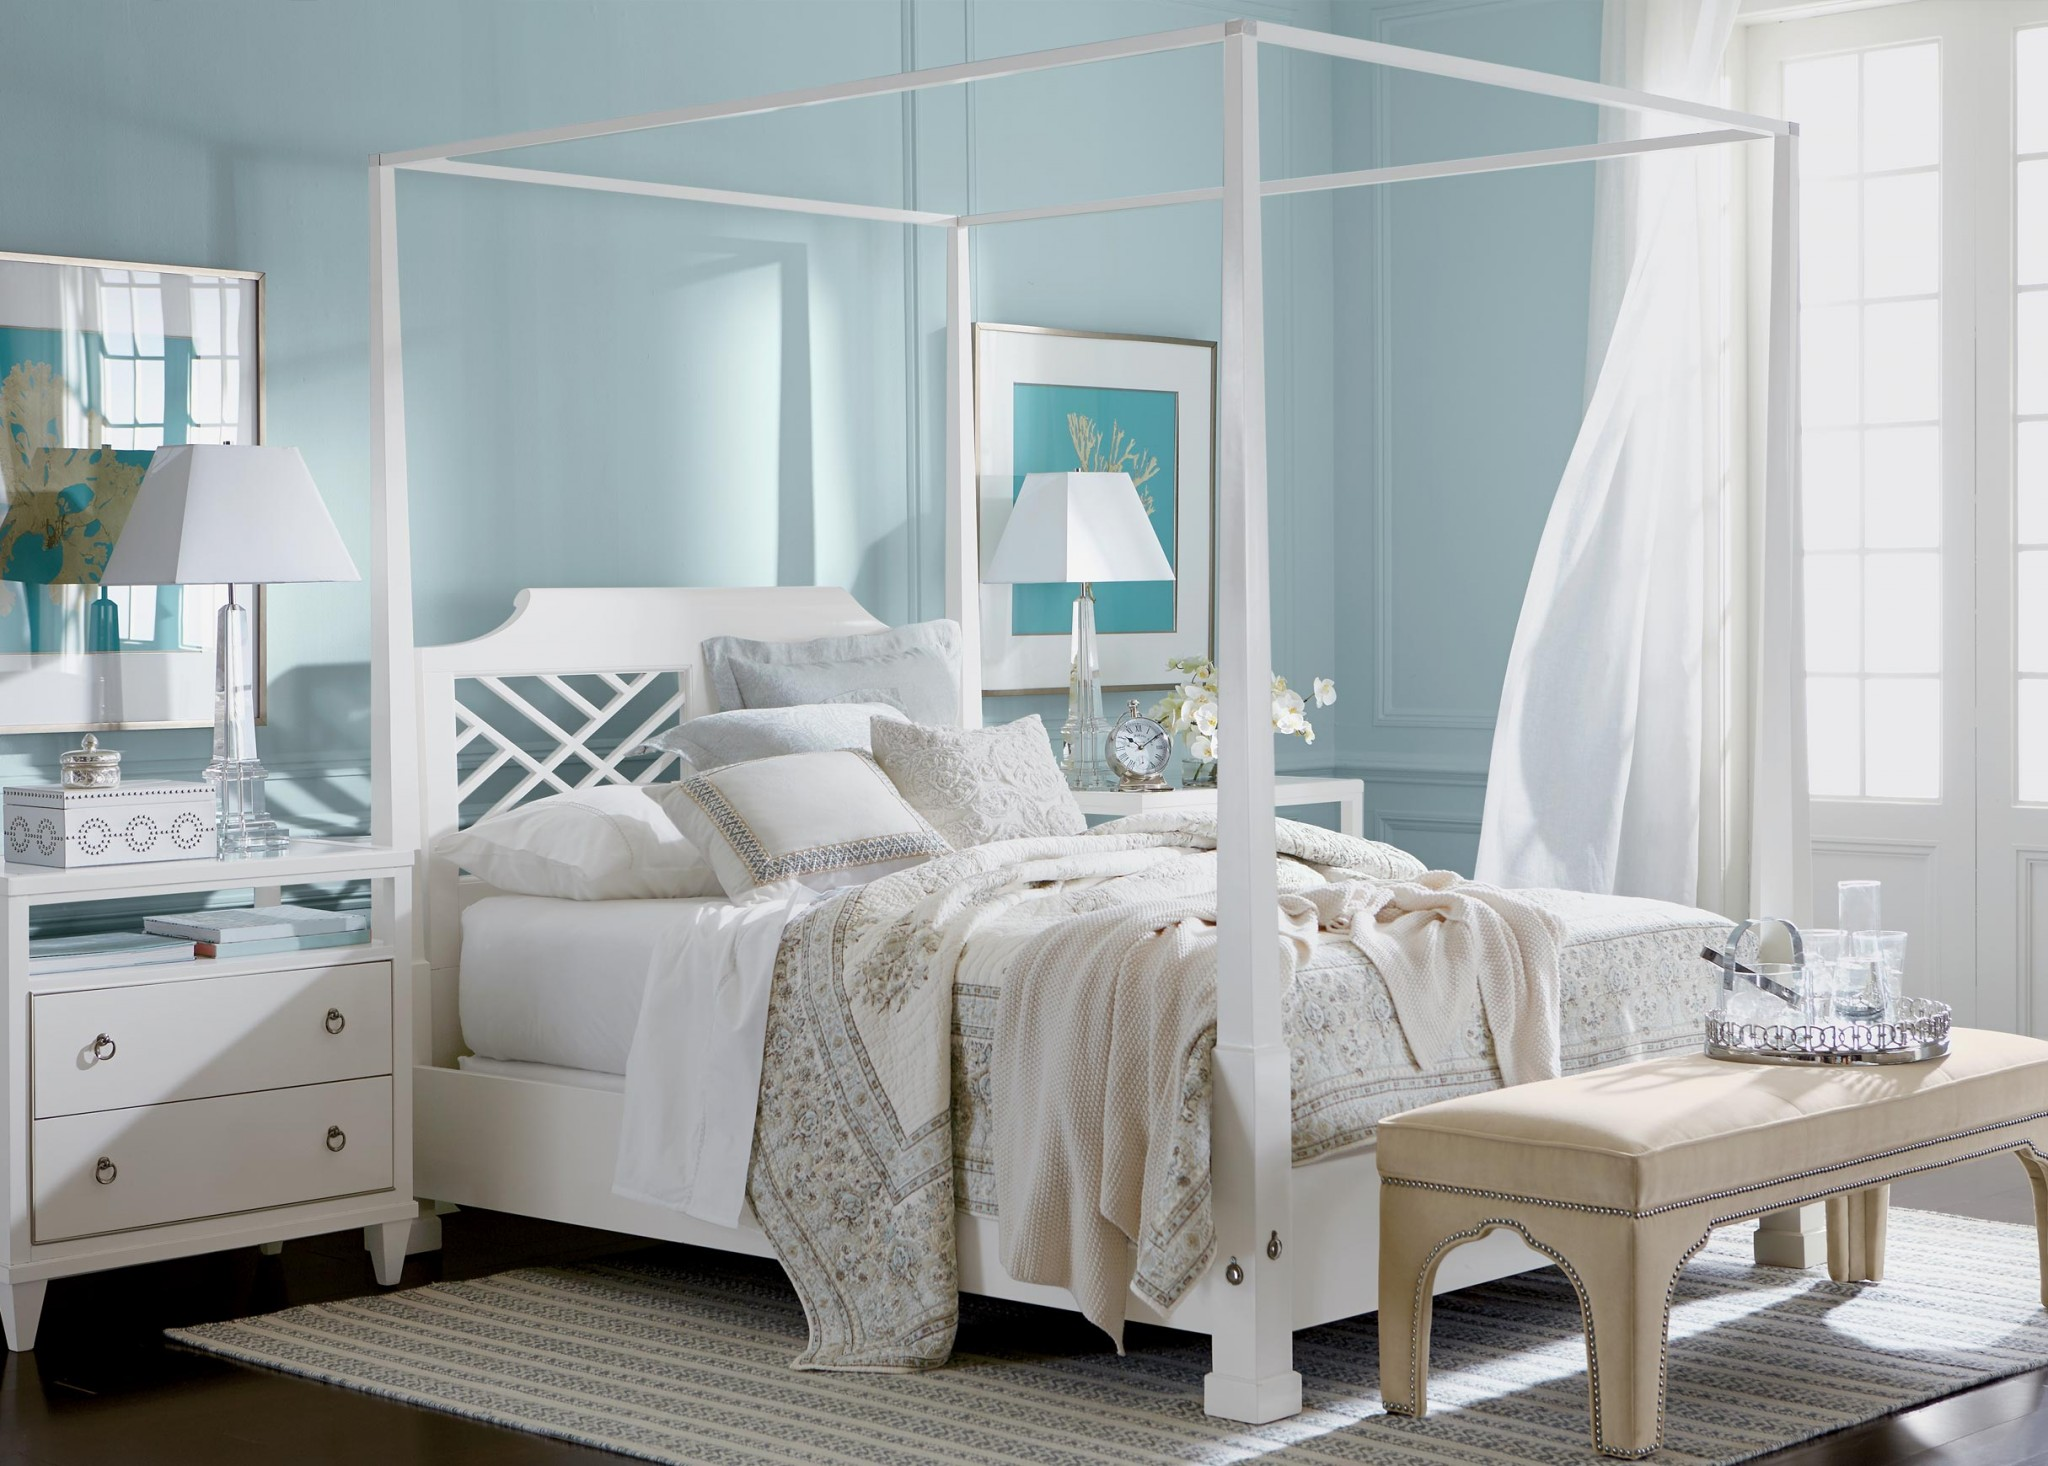 ethan Allen  breezypoint_bedroom_room